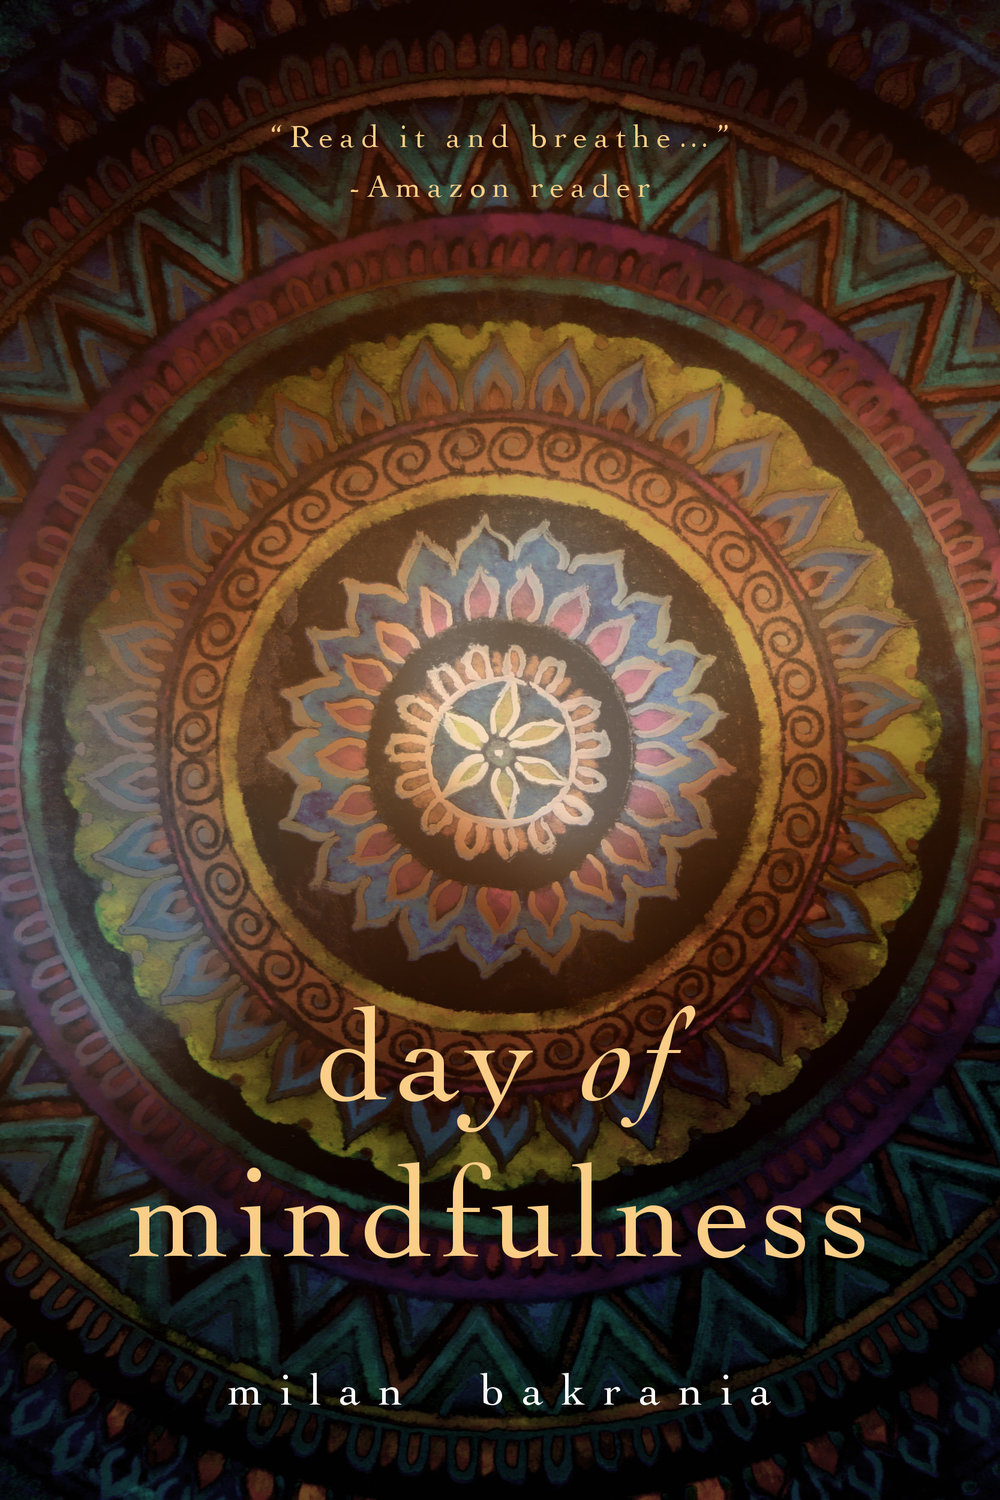 Free eBook - There are seven billion people on the planet, but not all of us are living in a state of mindfulness.Day of Mindfulness is a simple guide designed for those who are searching for a moment of peace in a busy world. You'll learn ancient techniques to still the mind and be introduced to concepts that encourage mental well-being.